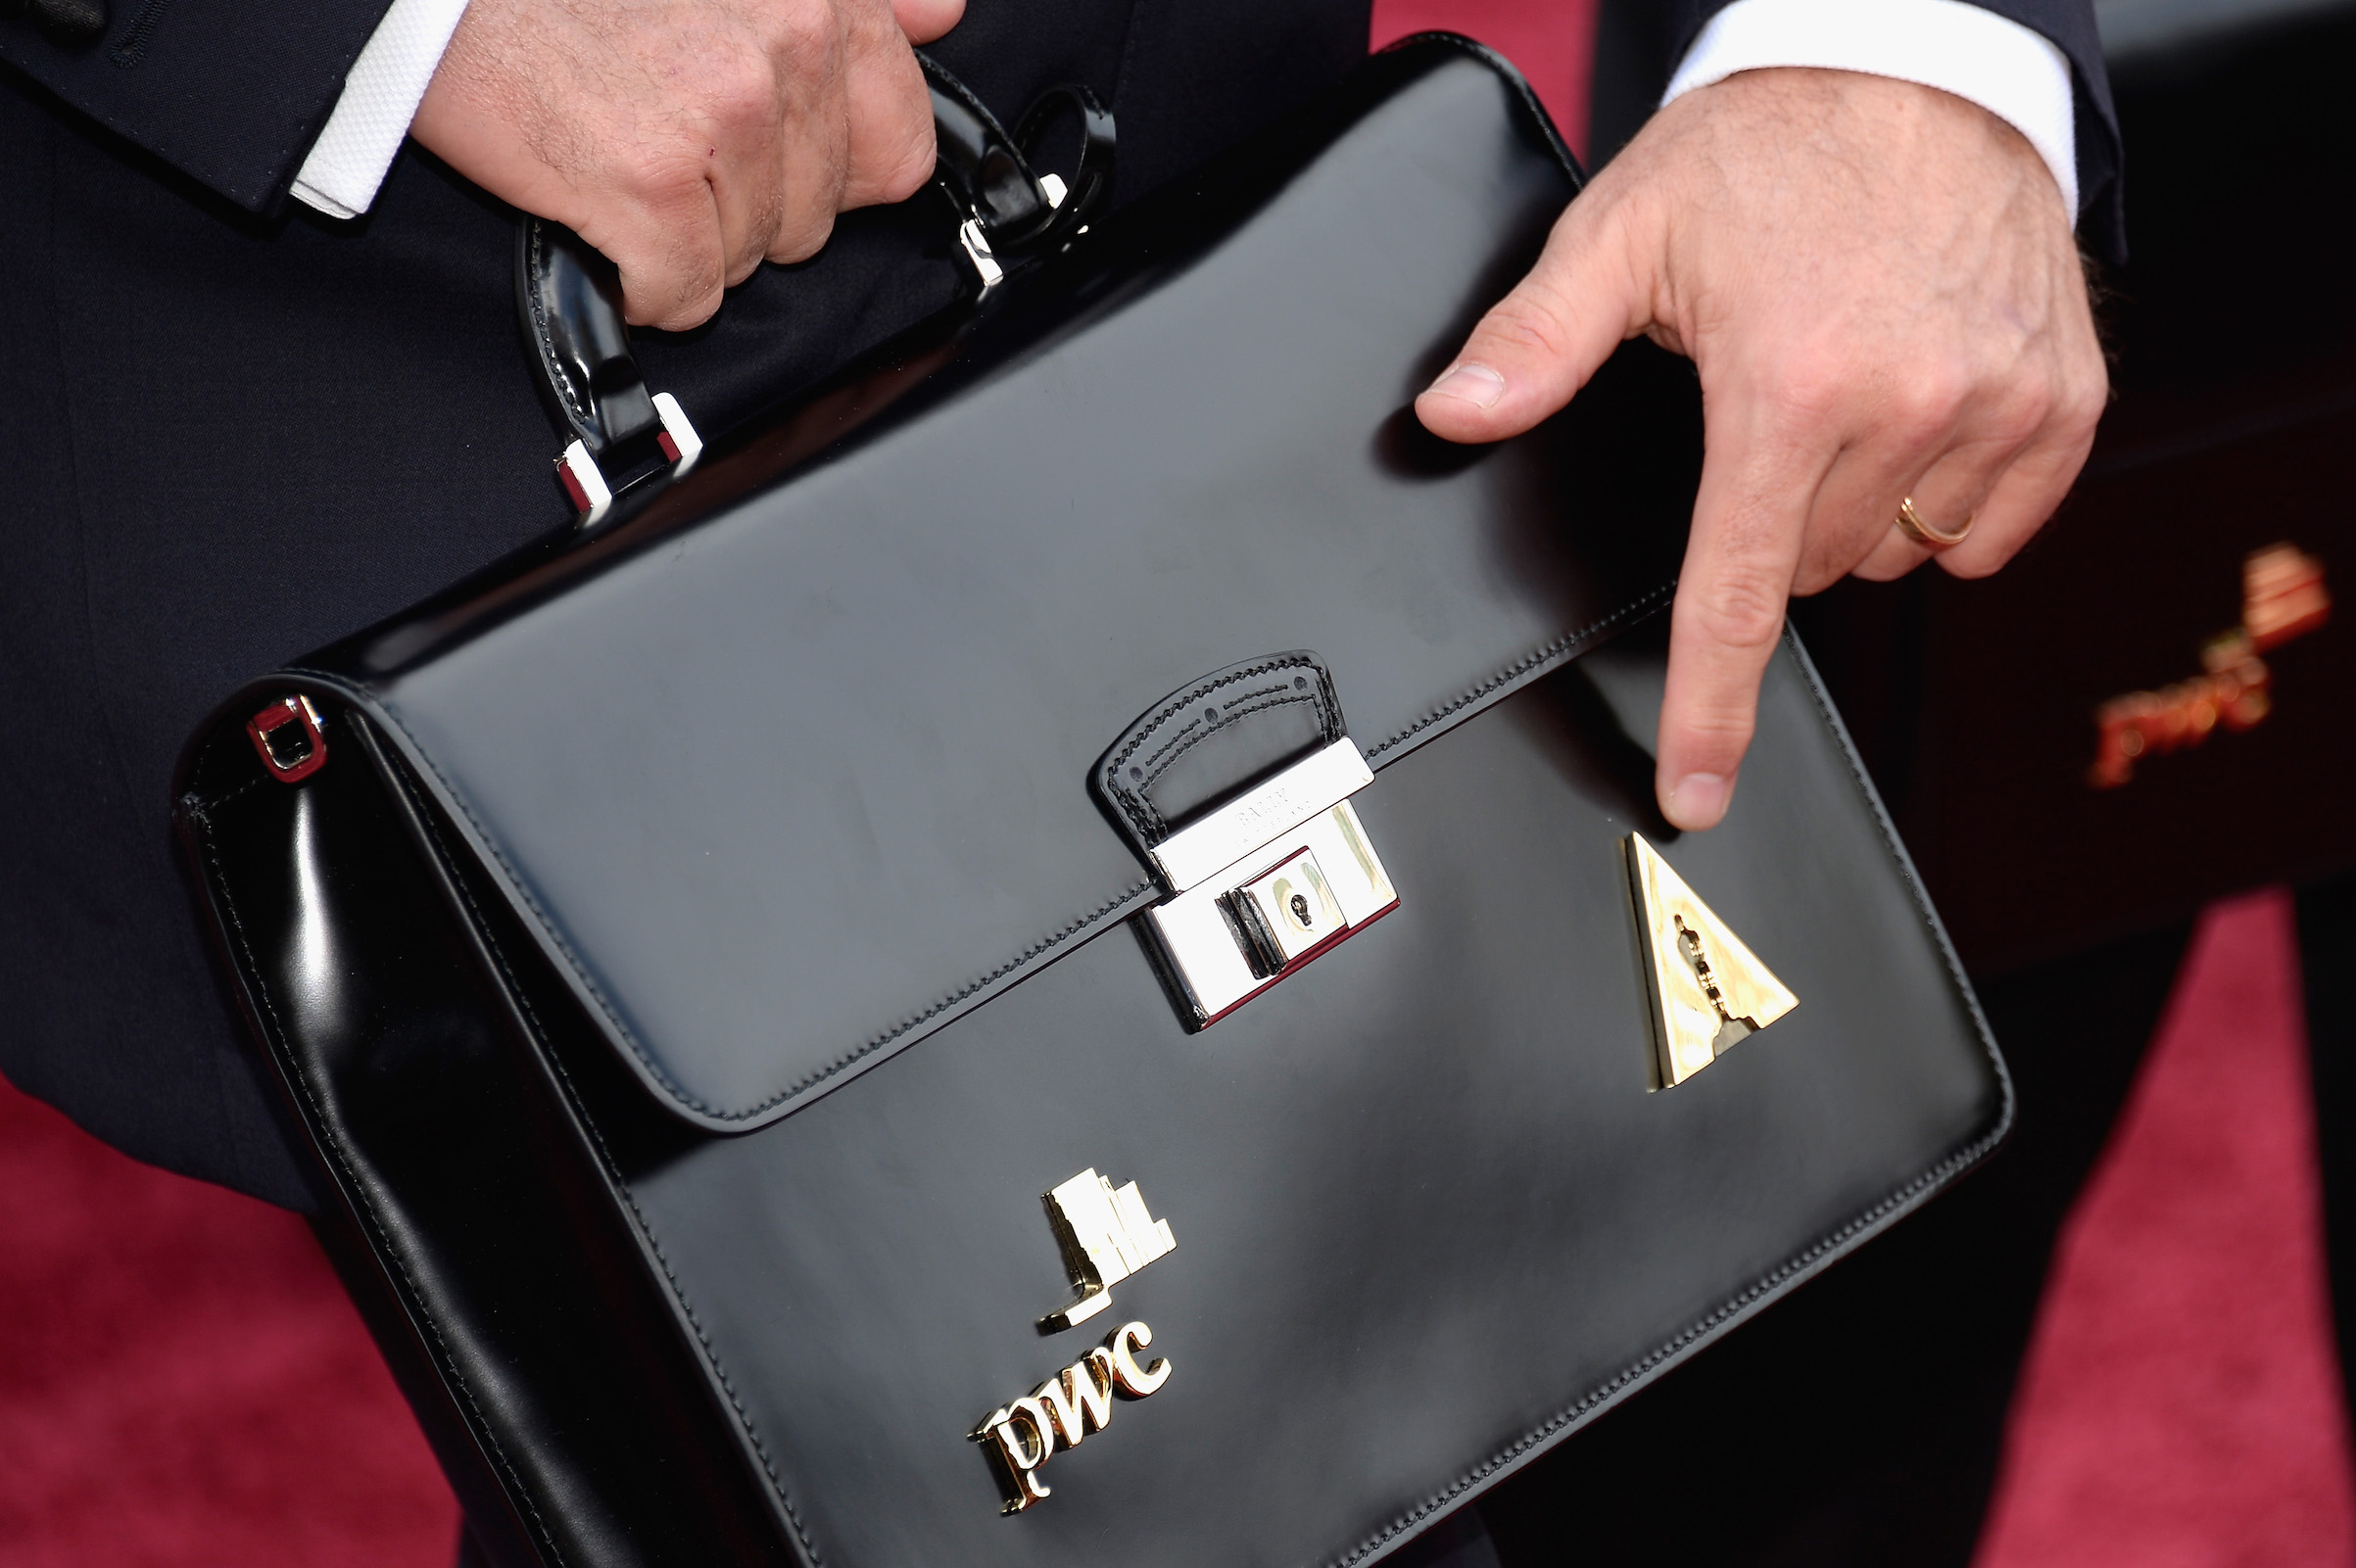 A PricewaterhouseCoopers representative (with a briefcase) attends the Oscars held on March 2, 2014 in Hollywood, Calif.